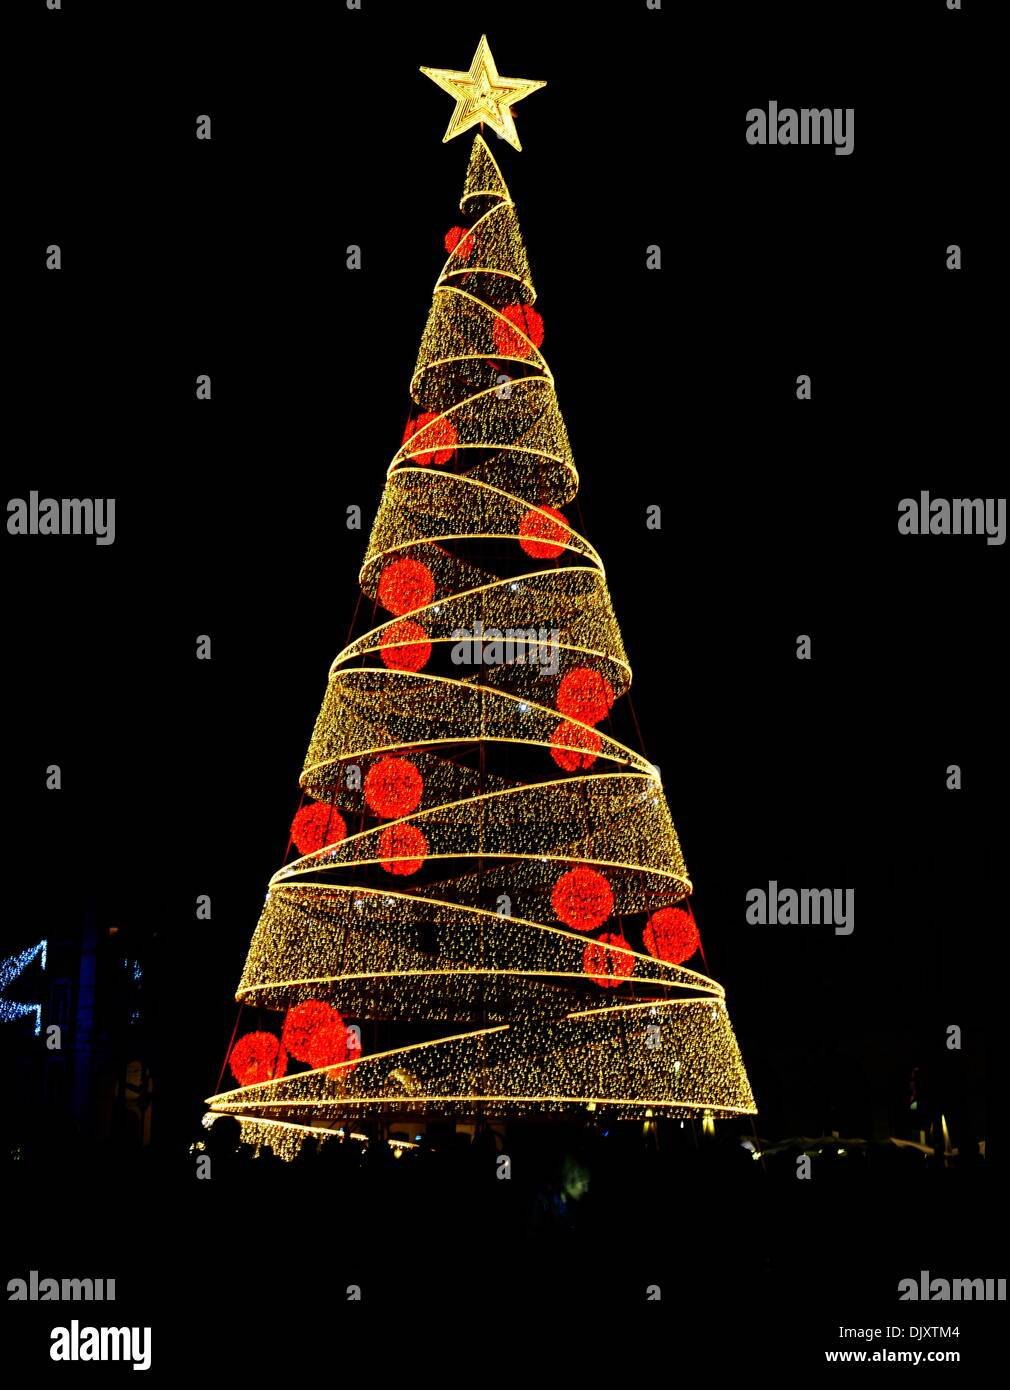 Lisbon, Portugal. 1st Dec, 2013. A huge Christmas Tree is lighted up in central Lisbon, Portugal, on Nov. 30, 2013. © Zhang Liyun/Xinhua/Alamy Live News - Stock Image